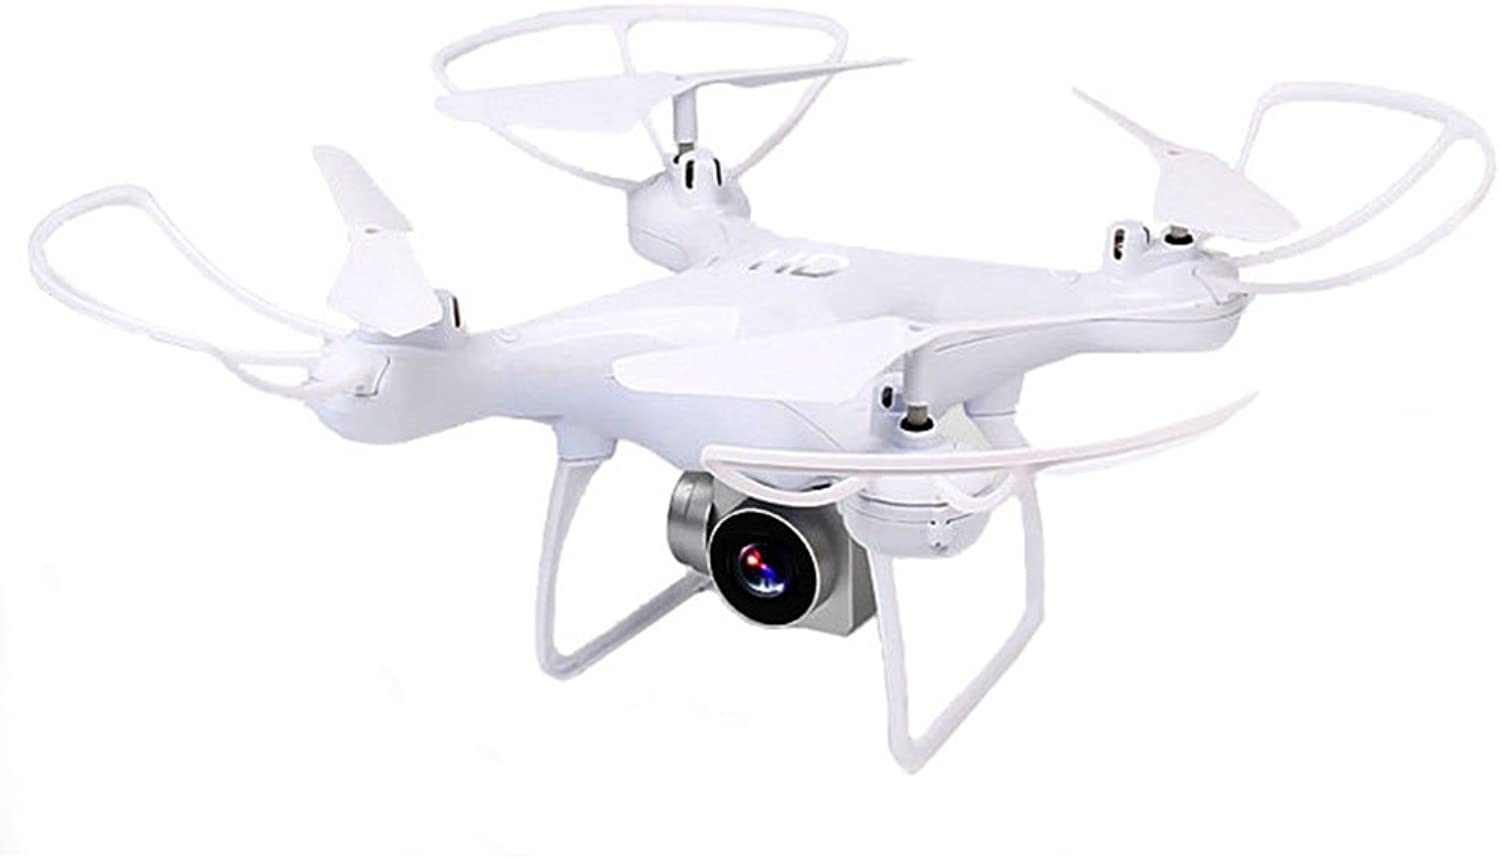 Drones with Camera 30W Pixel,Intelligent 20min 4 Channel One Key Take Off Altitude Hold Quadcopter Drones for Kids Adults Beginners_White